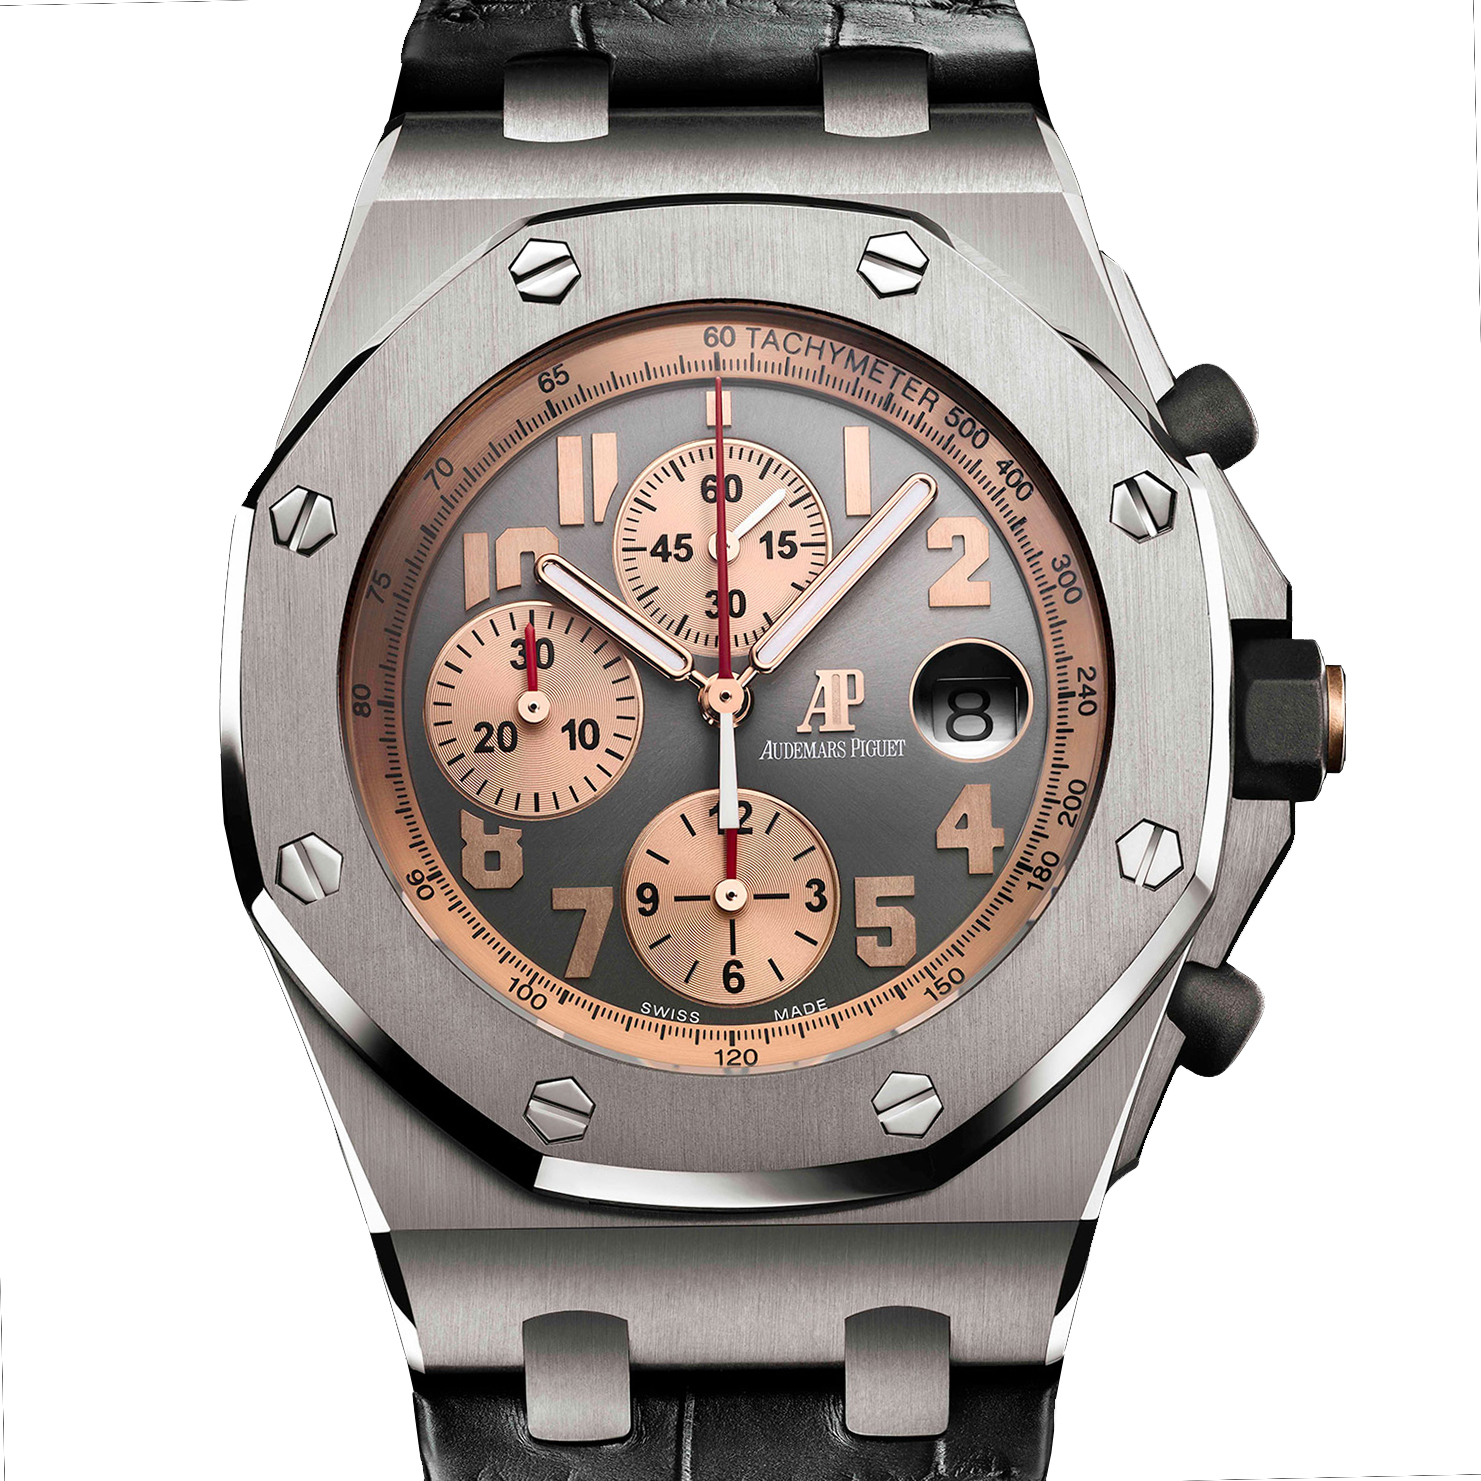 Royal Oak Offshore Chronograph Pride of Indonesia 26179IR.OO.A005CR.01